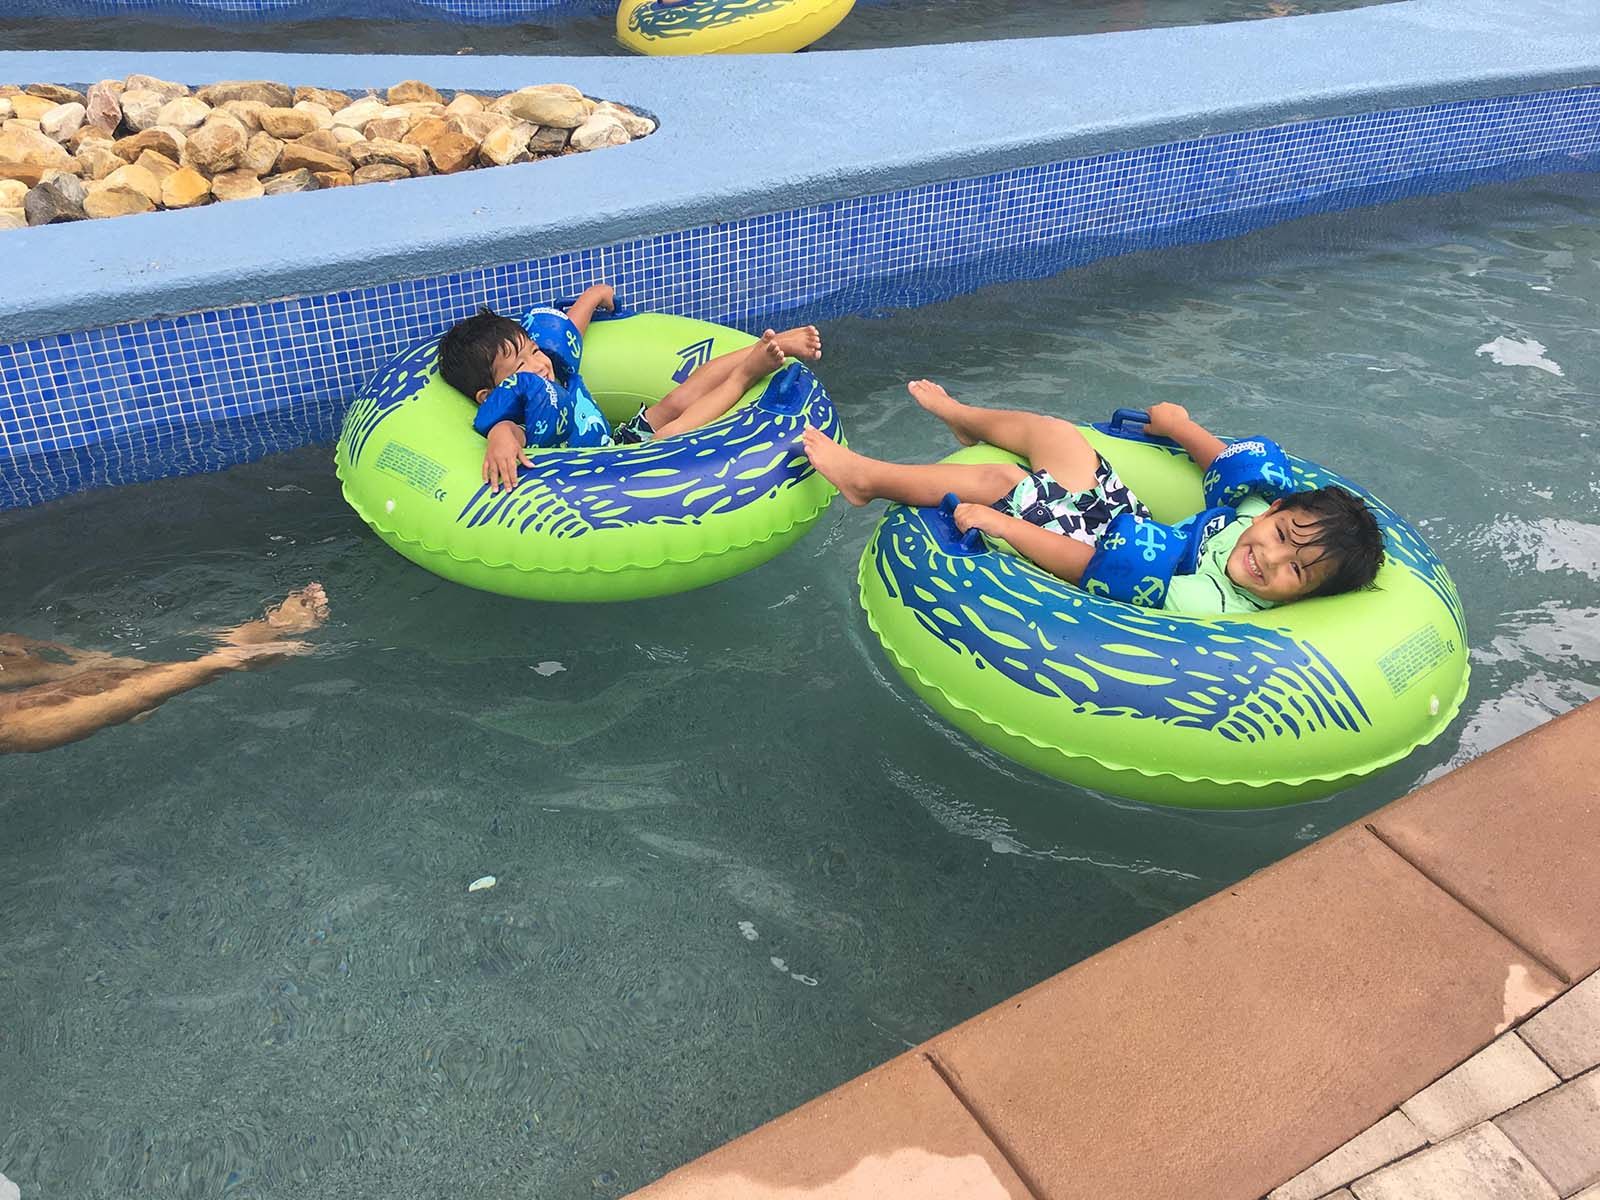 Two boys laying in green tubes in lazy river